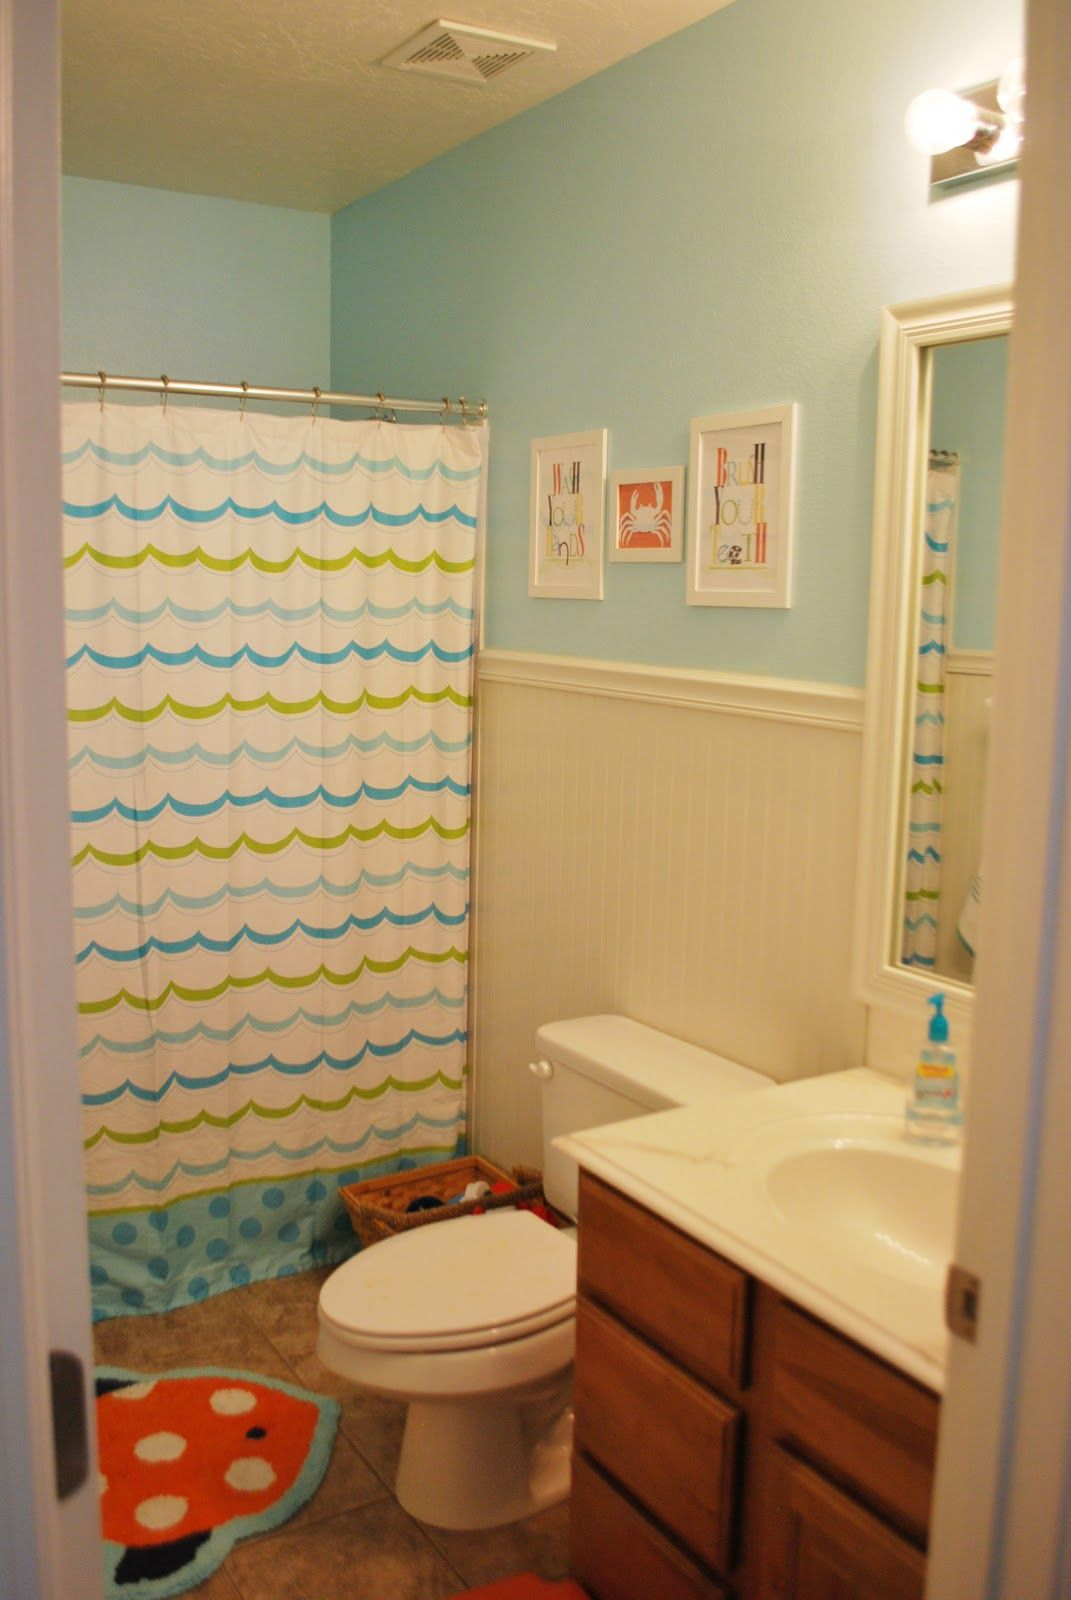 Attrayant 25 Cute And Colorful Kids Bathroom Ideas [Fun Design Solutions For Your  Home | Kid Bathrooms, Spaces And Room